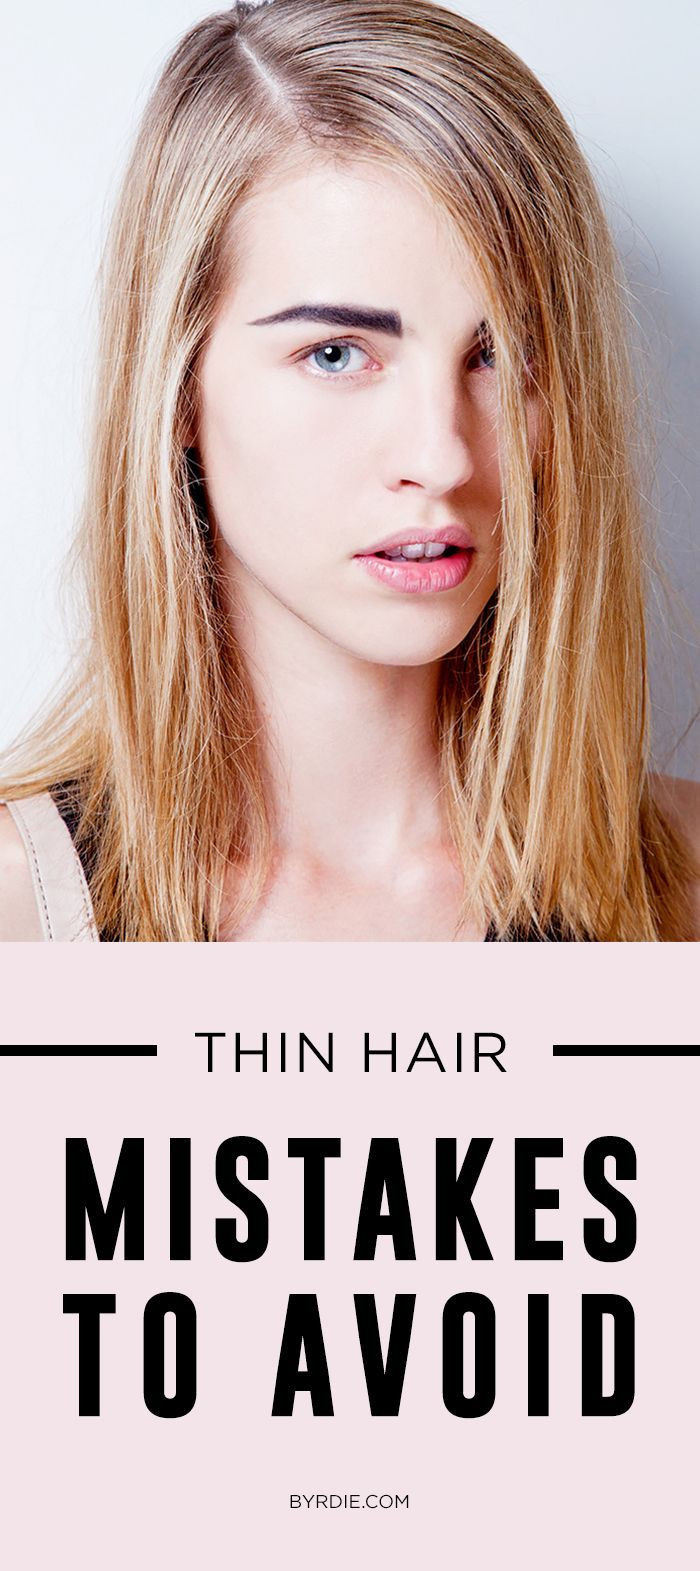 Best ideas about Hairstyles For Thinning Hair Female . Save or Pin 1000 ideas about Hairstyles Thin Hair on Pinterest Now.